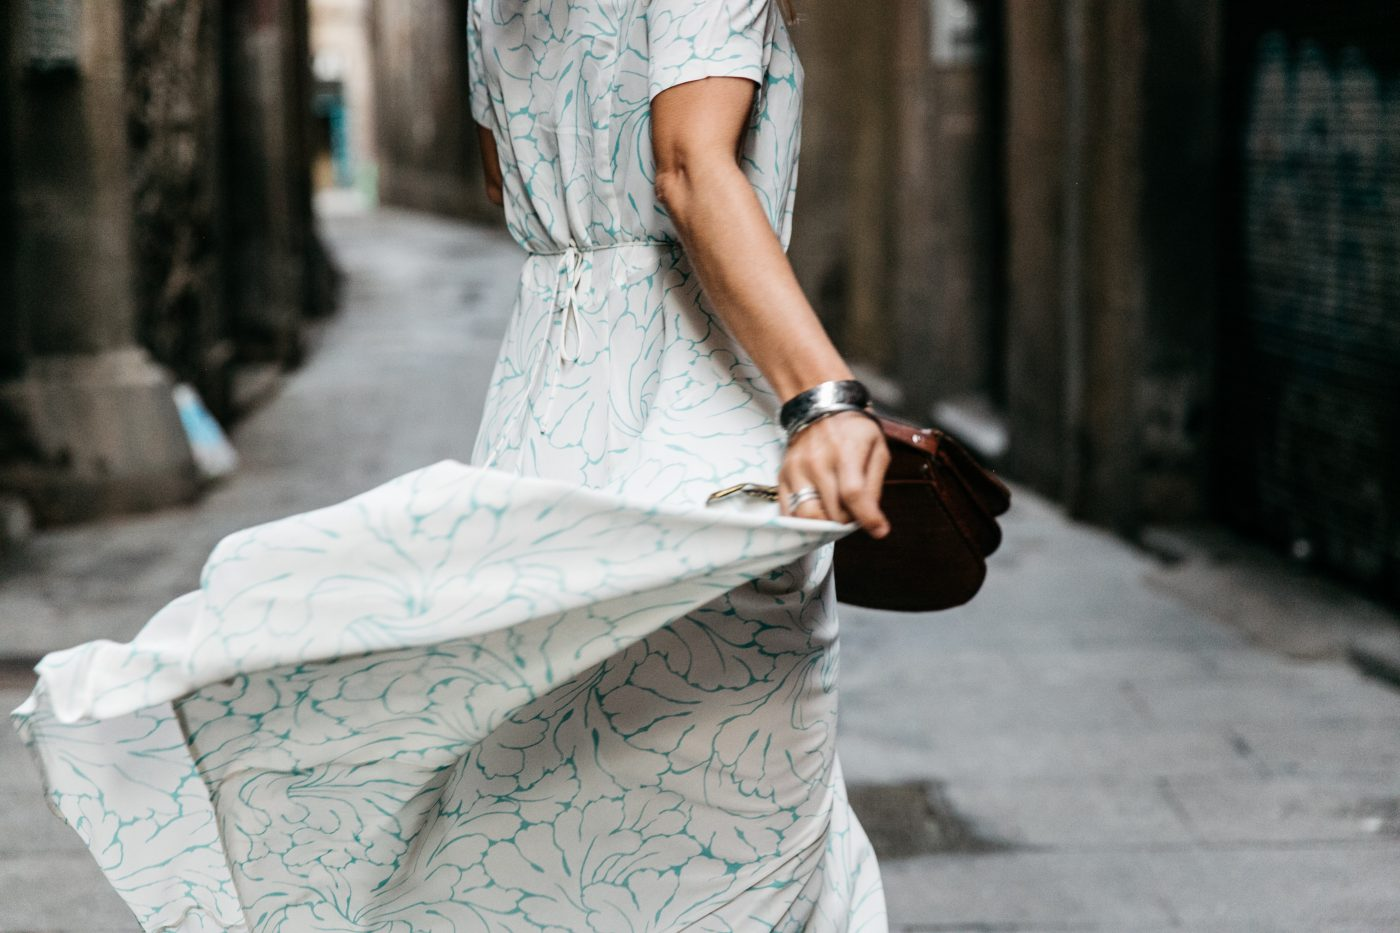 Long_Dress-HM_Leather_Bag-Maje_Sandals-Outfit-Primavera_Sound-Collage_Vintage-Street_Style-17